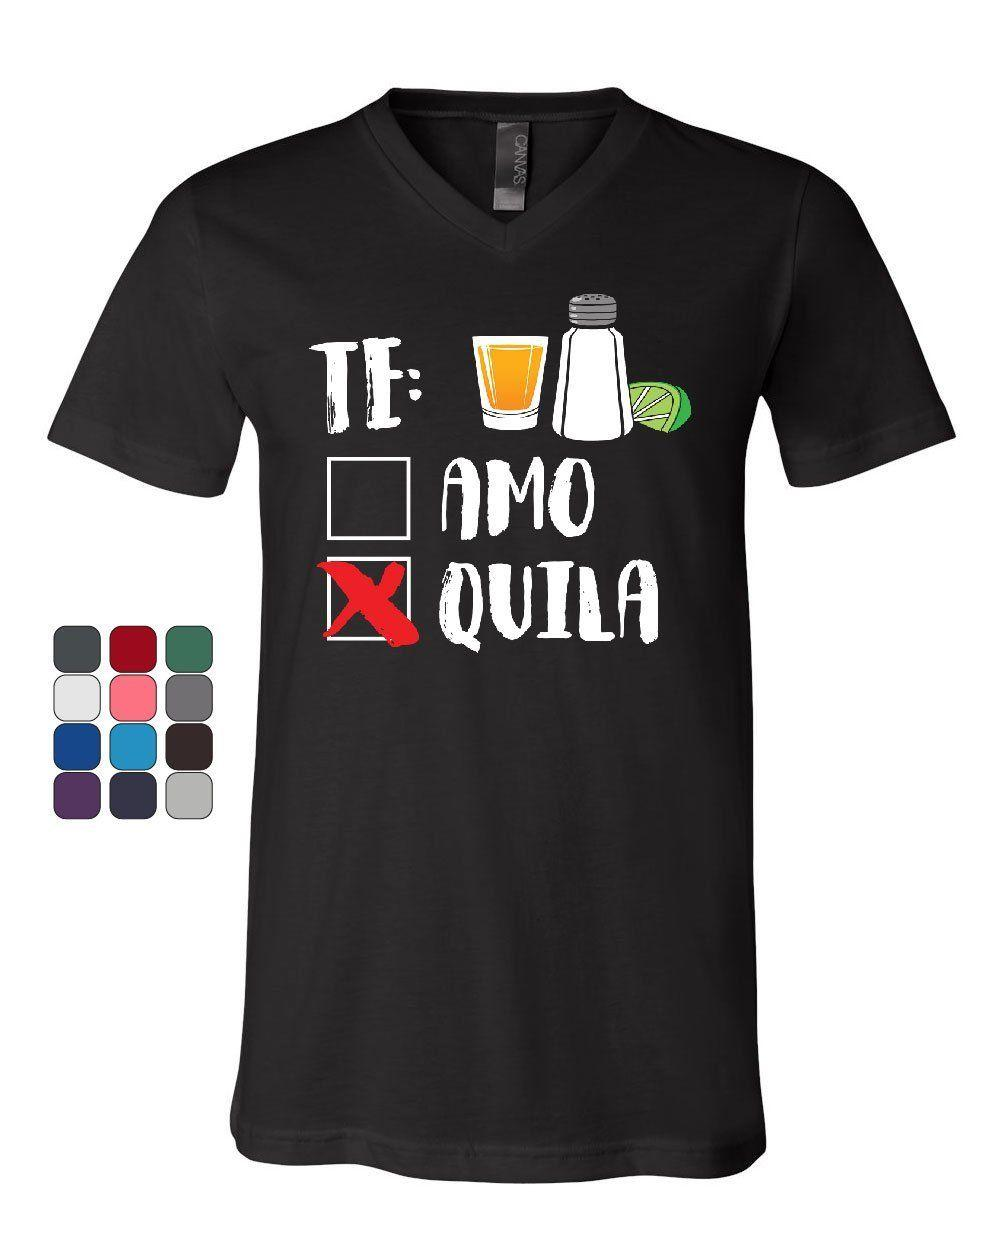 f74a28dd93 Te Amo Or Tequila V Neck T Shirt Funny Cinco De Mayo & Drinko Mexican Tee  Style Round Colour Jersey Print T Shirt Cool Tee Shirt Designs Buy Cool T  Shirts ...